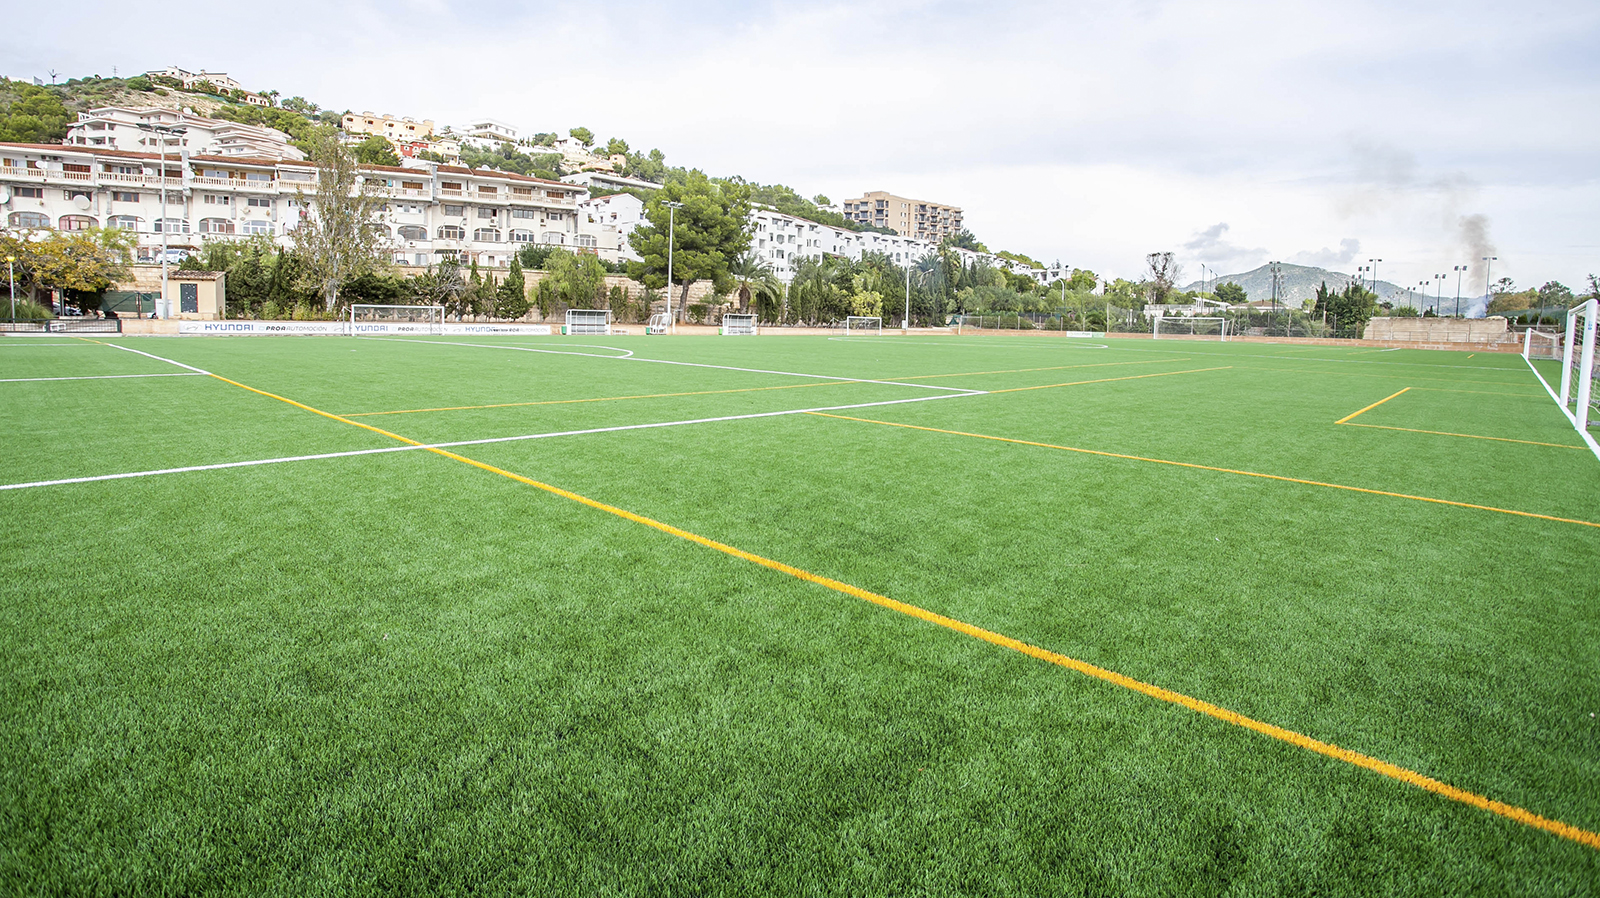 Santa Ponça Football. Preseason training in Mallorca. Football pitch. Entrenar fútbol en Mallorca